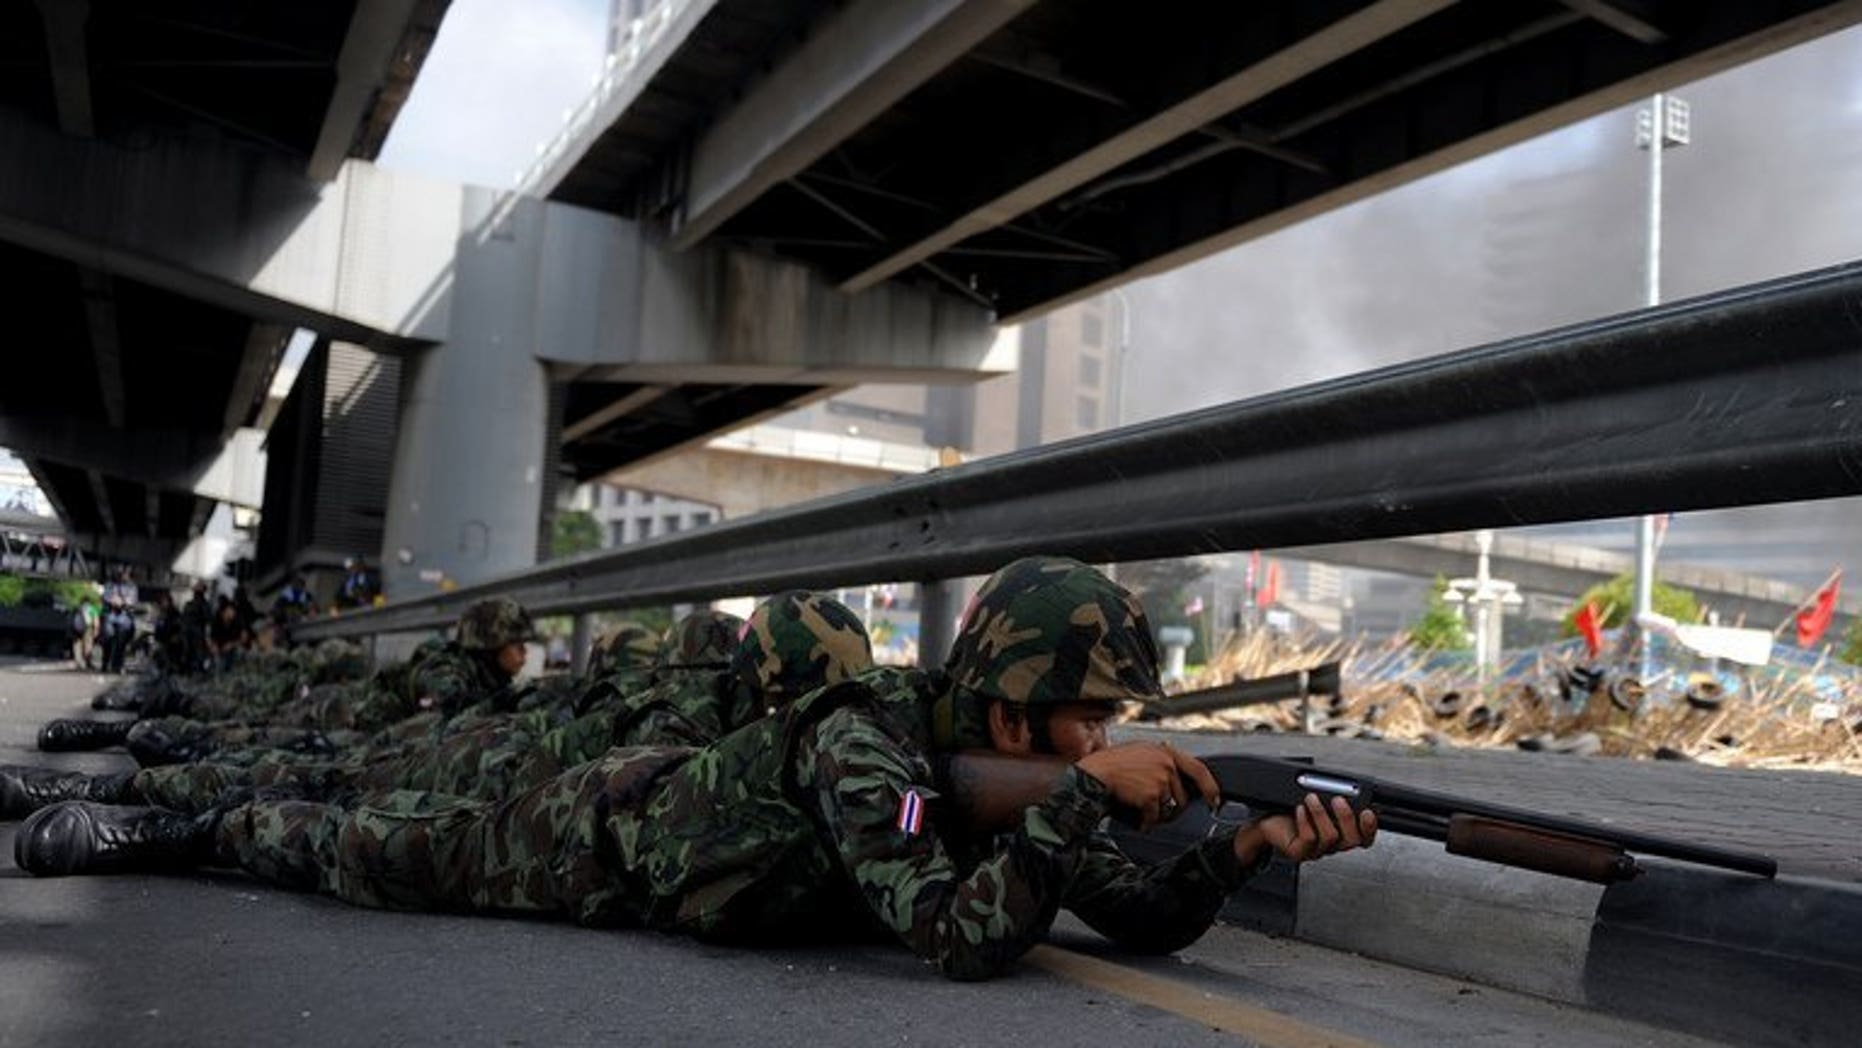 Thai soldiers take position outside the Red Shirt anti-government protesters' camp in Bangkok on May 19, 2010. Six Thais, including a nurse and two rescue volunteers, shot dead while sheltering in a Bangkok temple declared a safe zone during 2010 protests were killed by army bullets, a court ruled Tuesday.